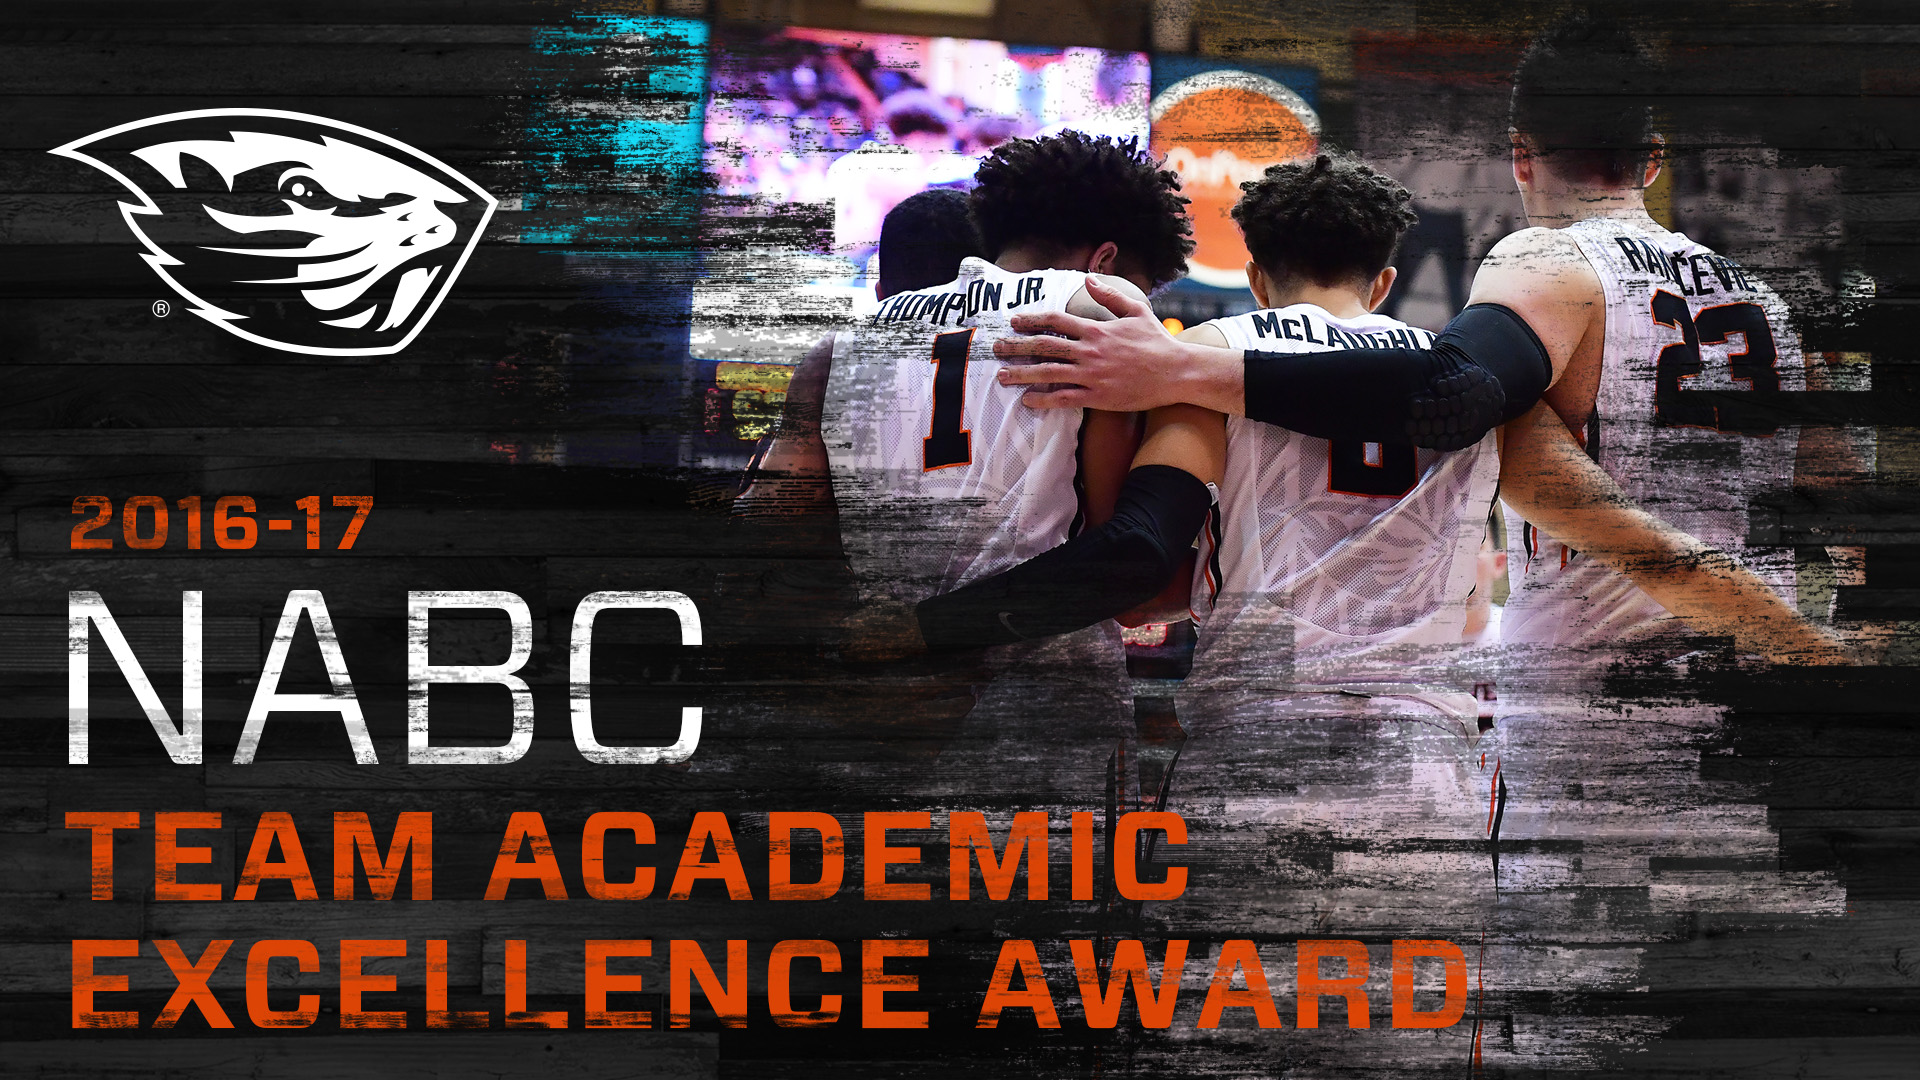 Nabc_team_academic_excellence_award